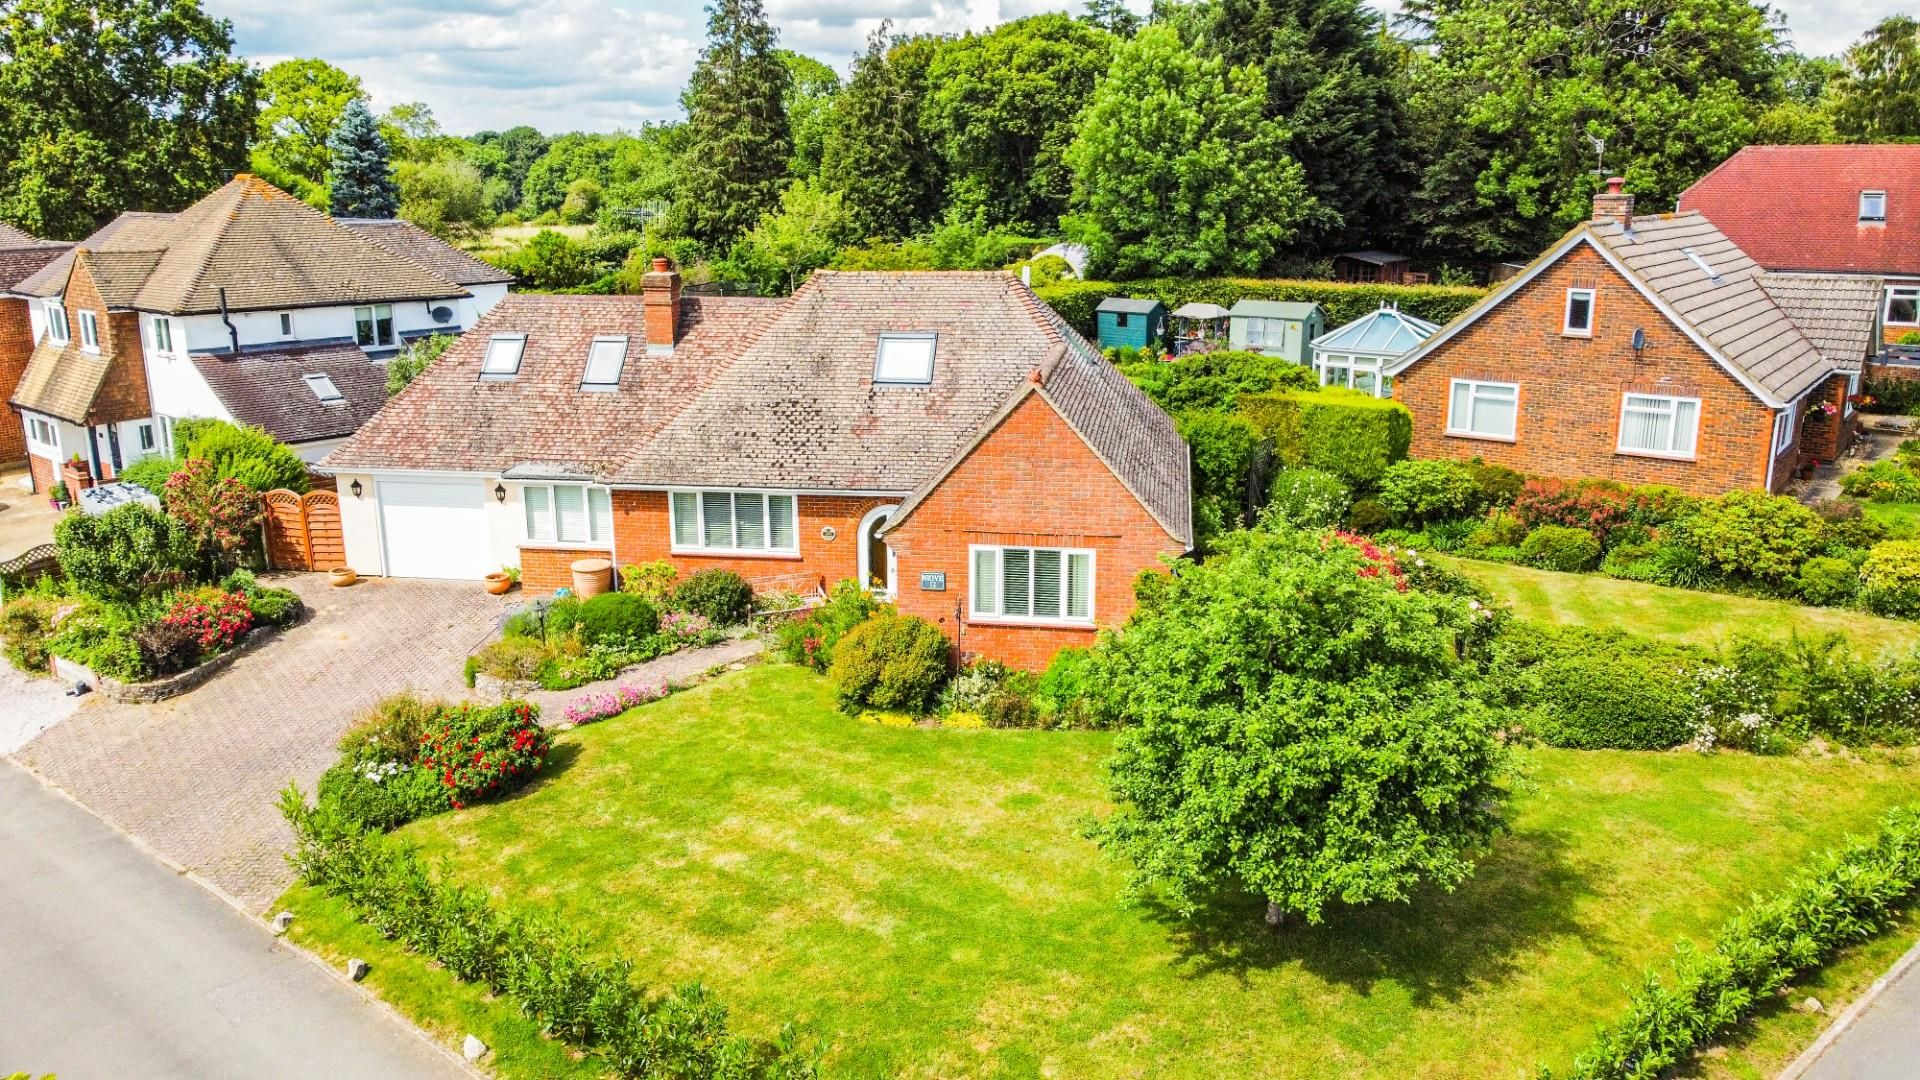 4 bed detached bungalow for sale in Send, GU23